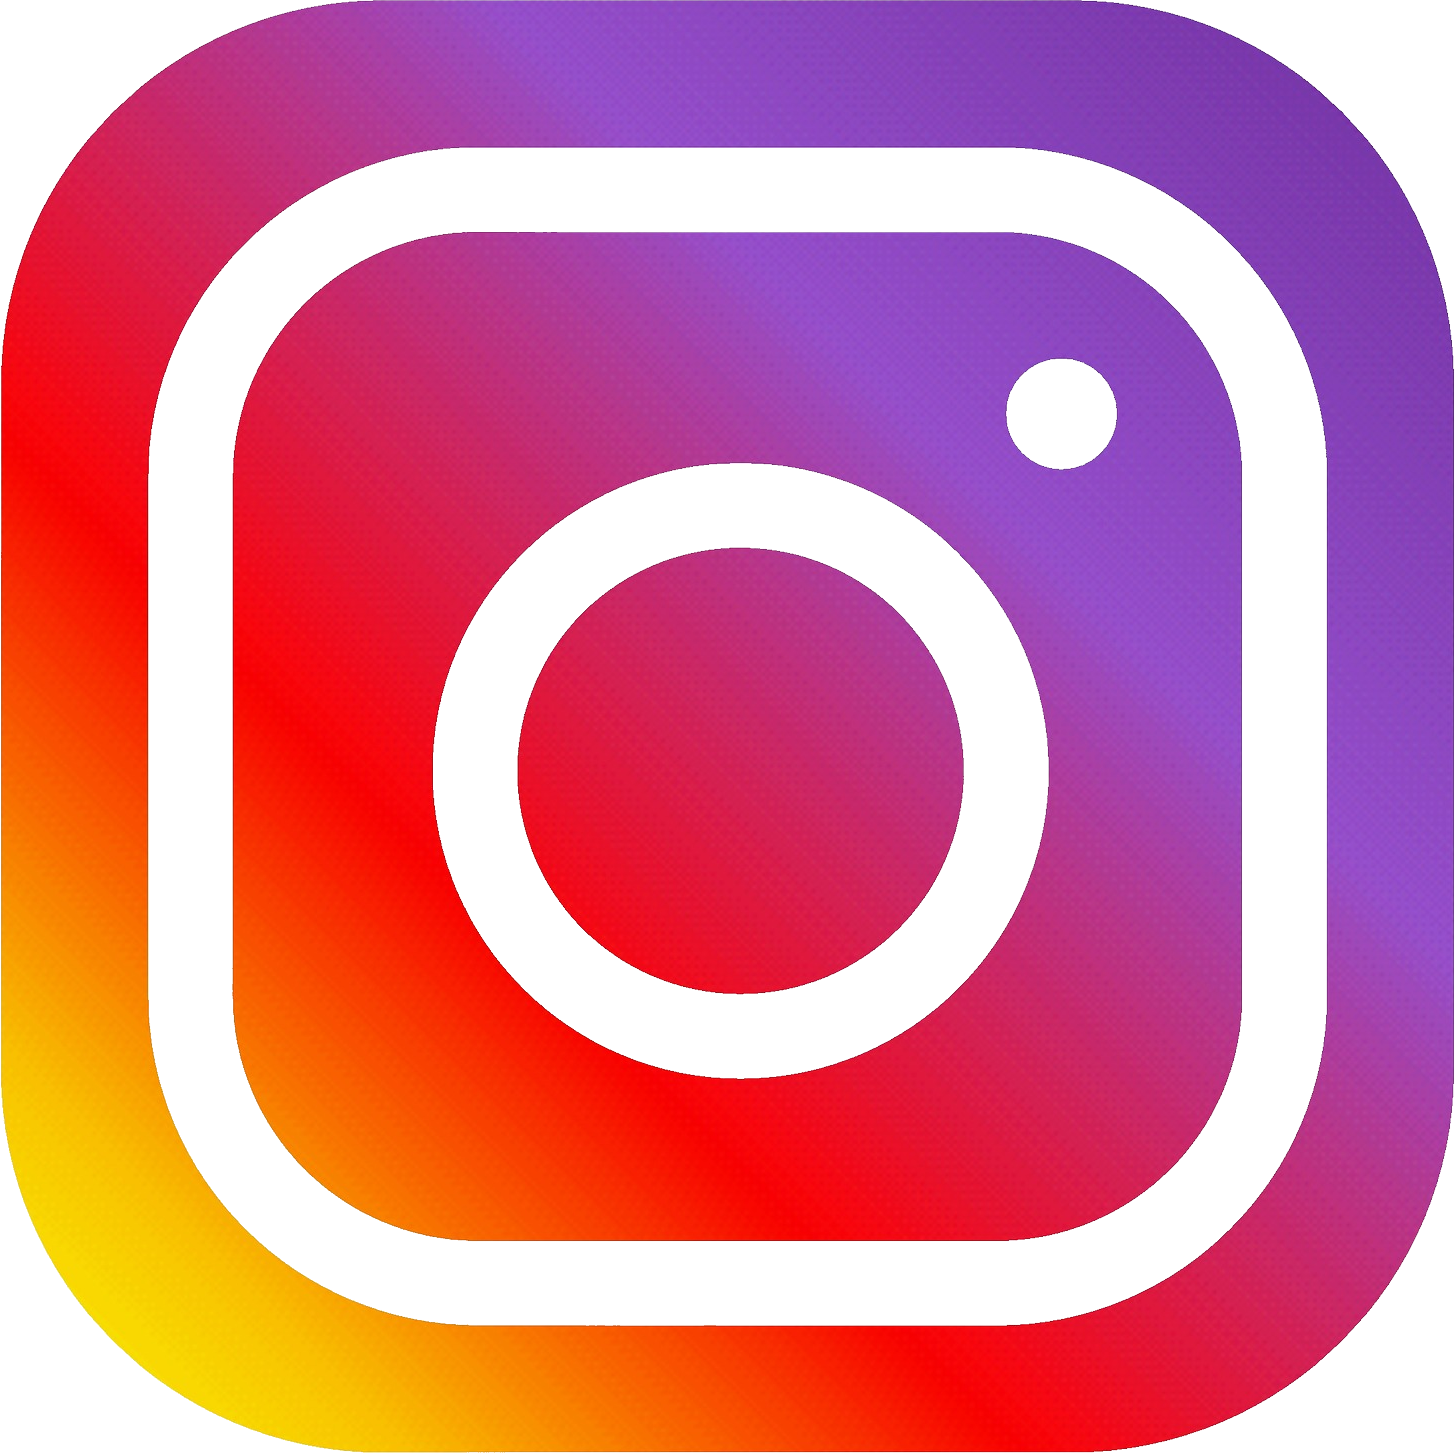 Logos redes sociales png instagram. Less than of newspapers